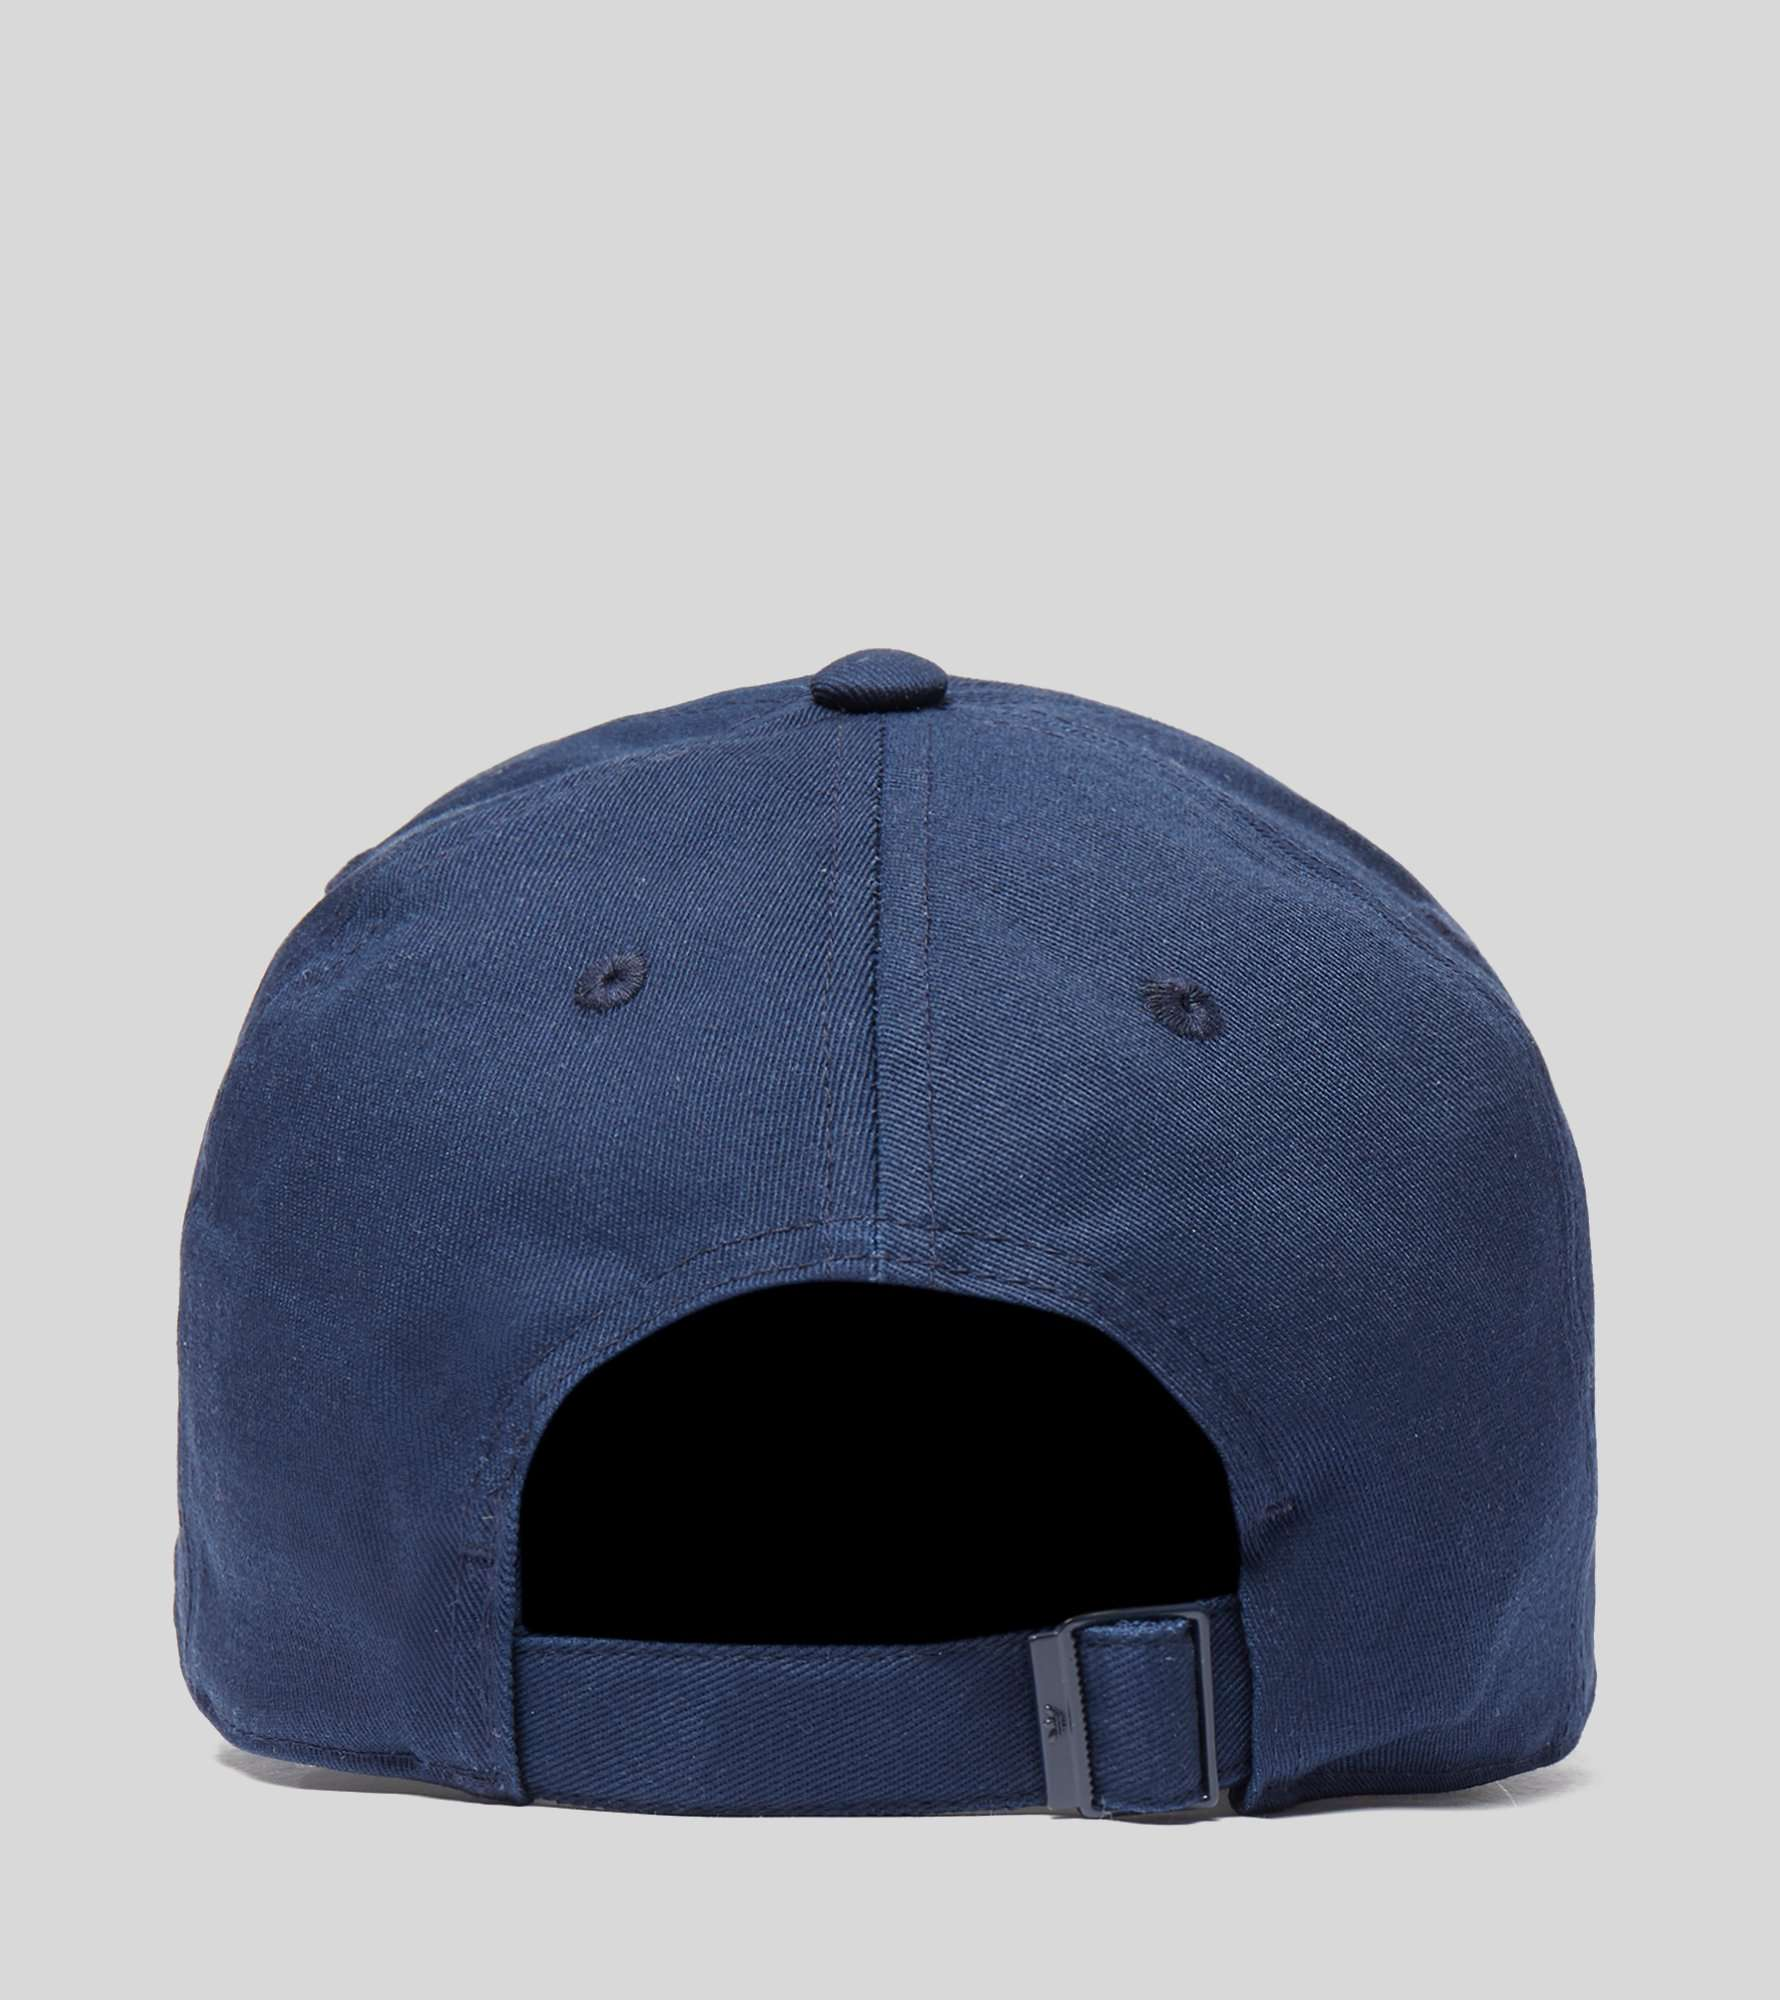 adidas Originals Samstag Dad Cap